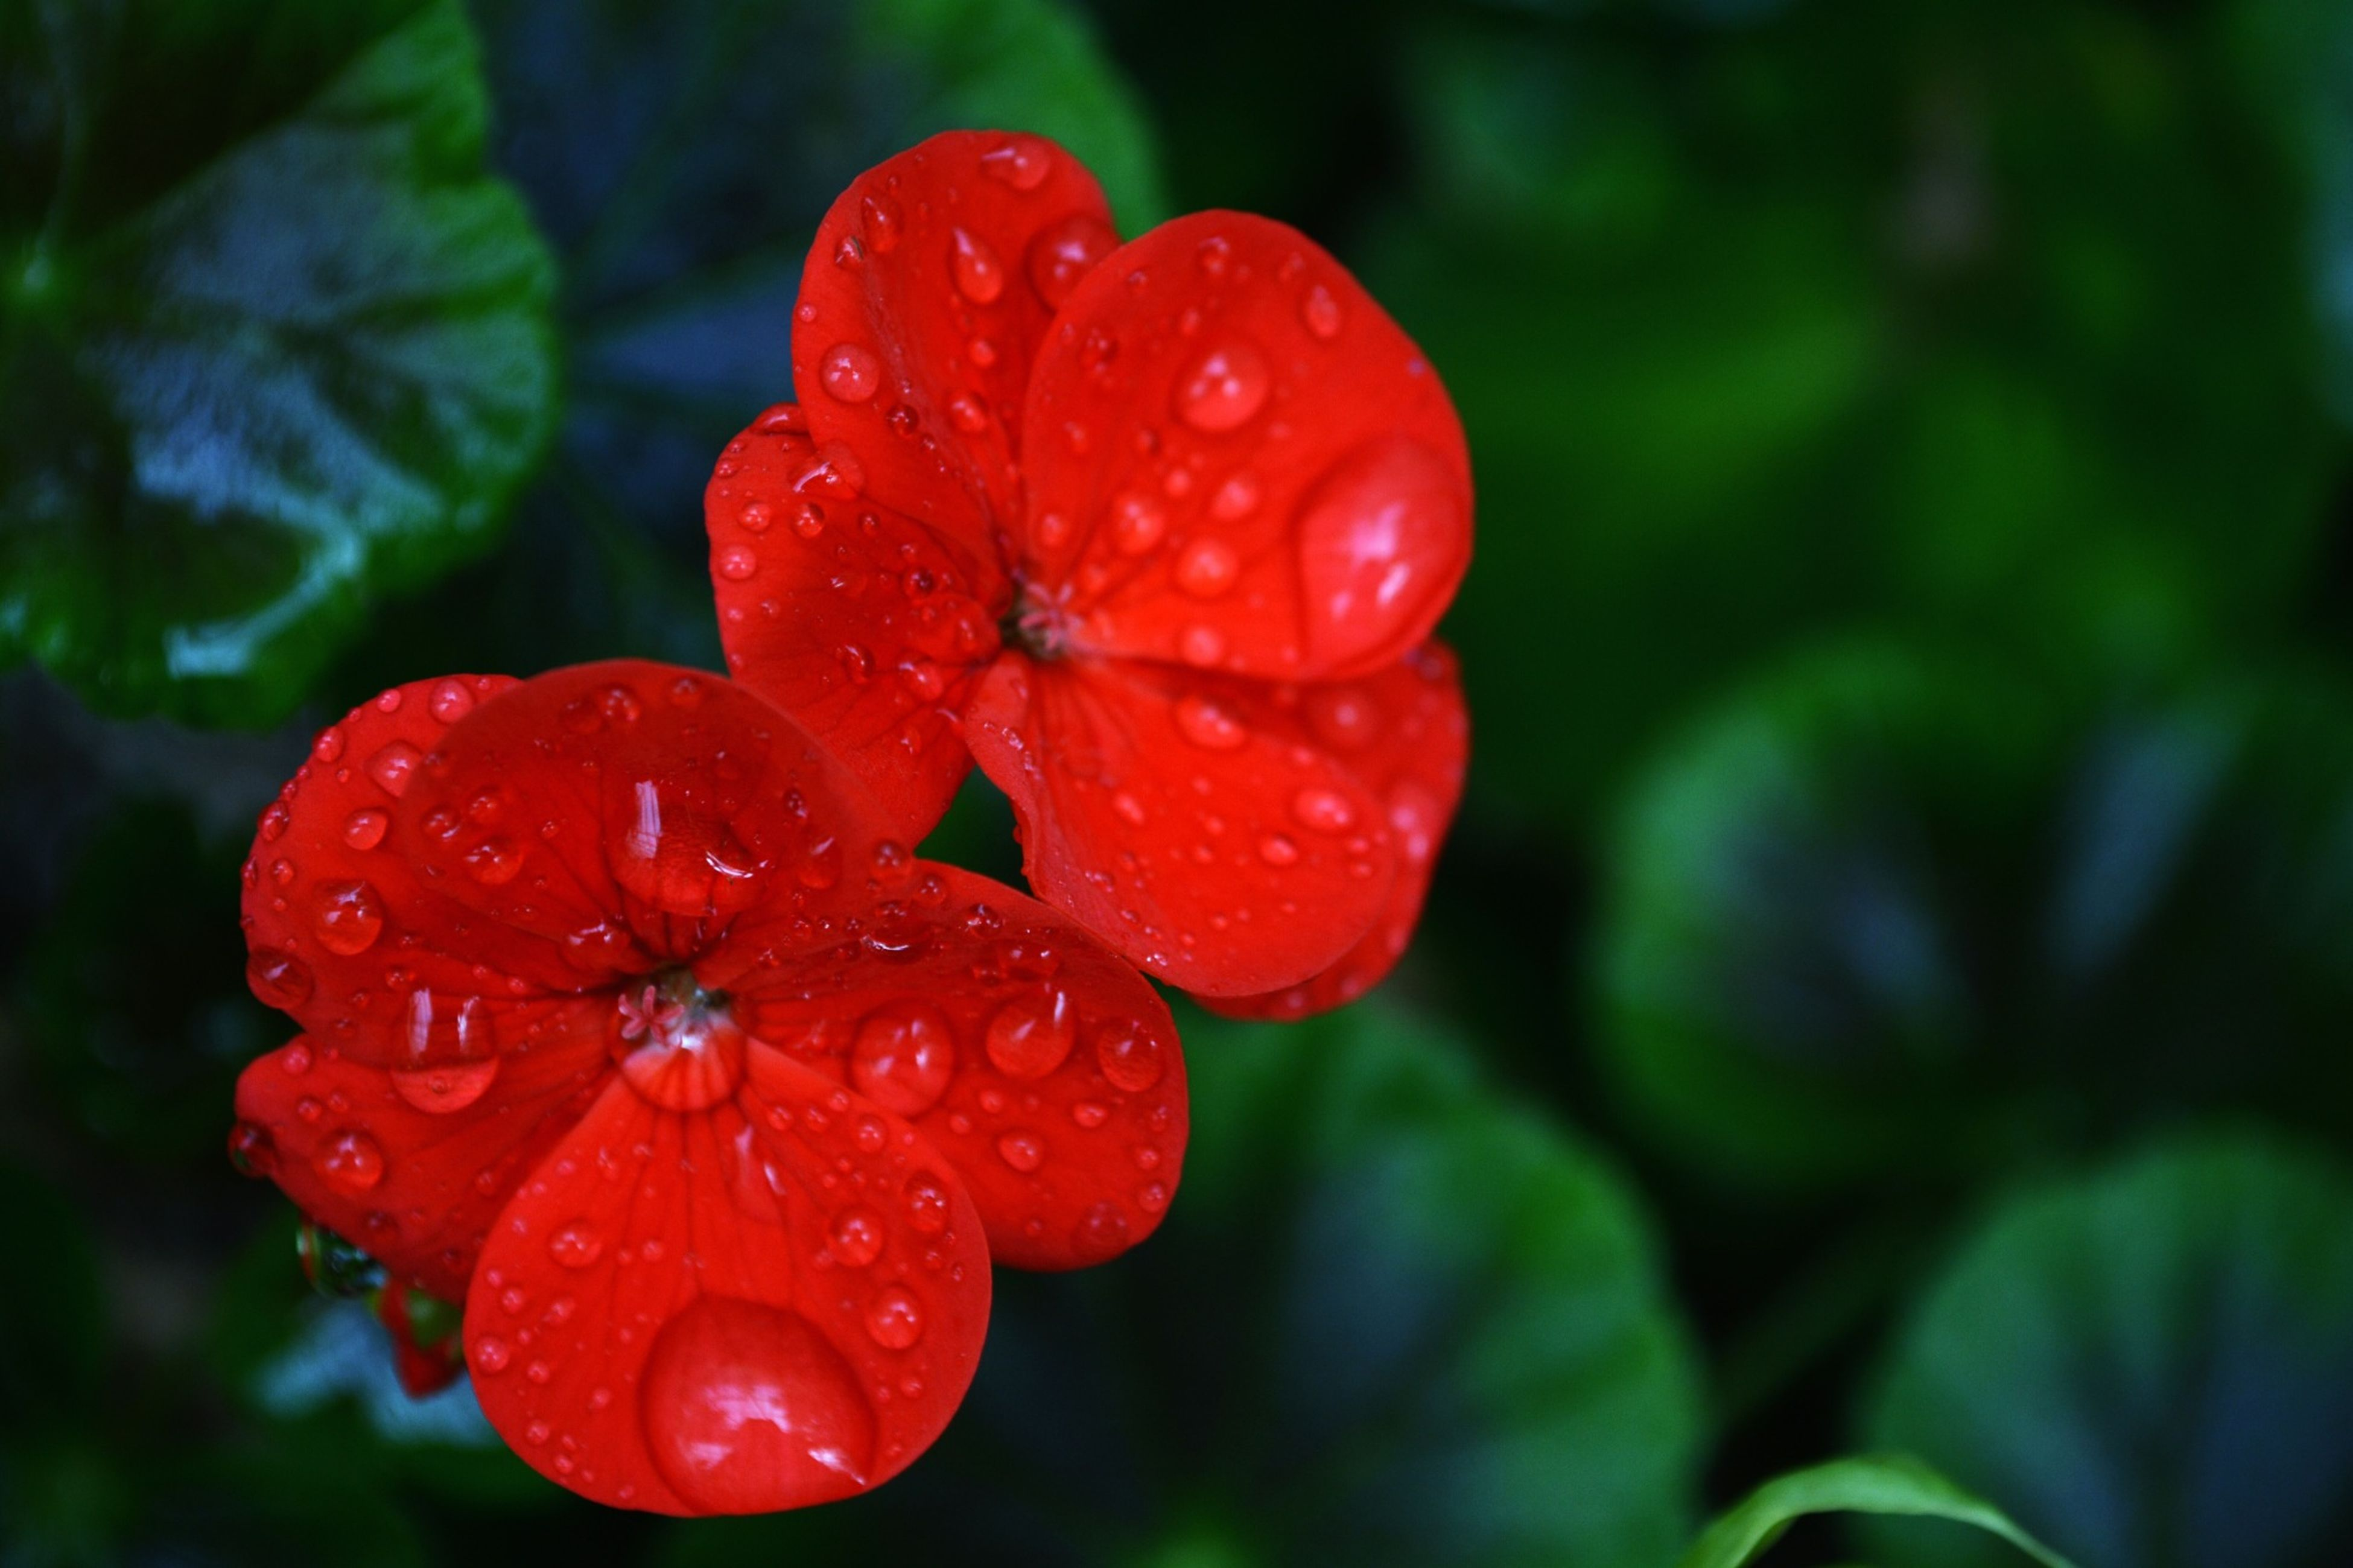 red, freshness, flower, drop, petal, fragility, growth, close-up, wet, flower head, beauty in nature, focus on foreground, water, plant, nature, dew, blooming, single flower, leaf, in bloom